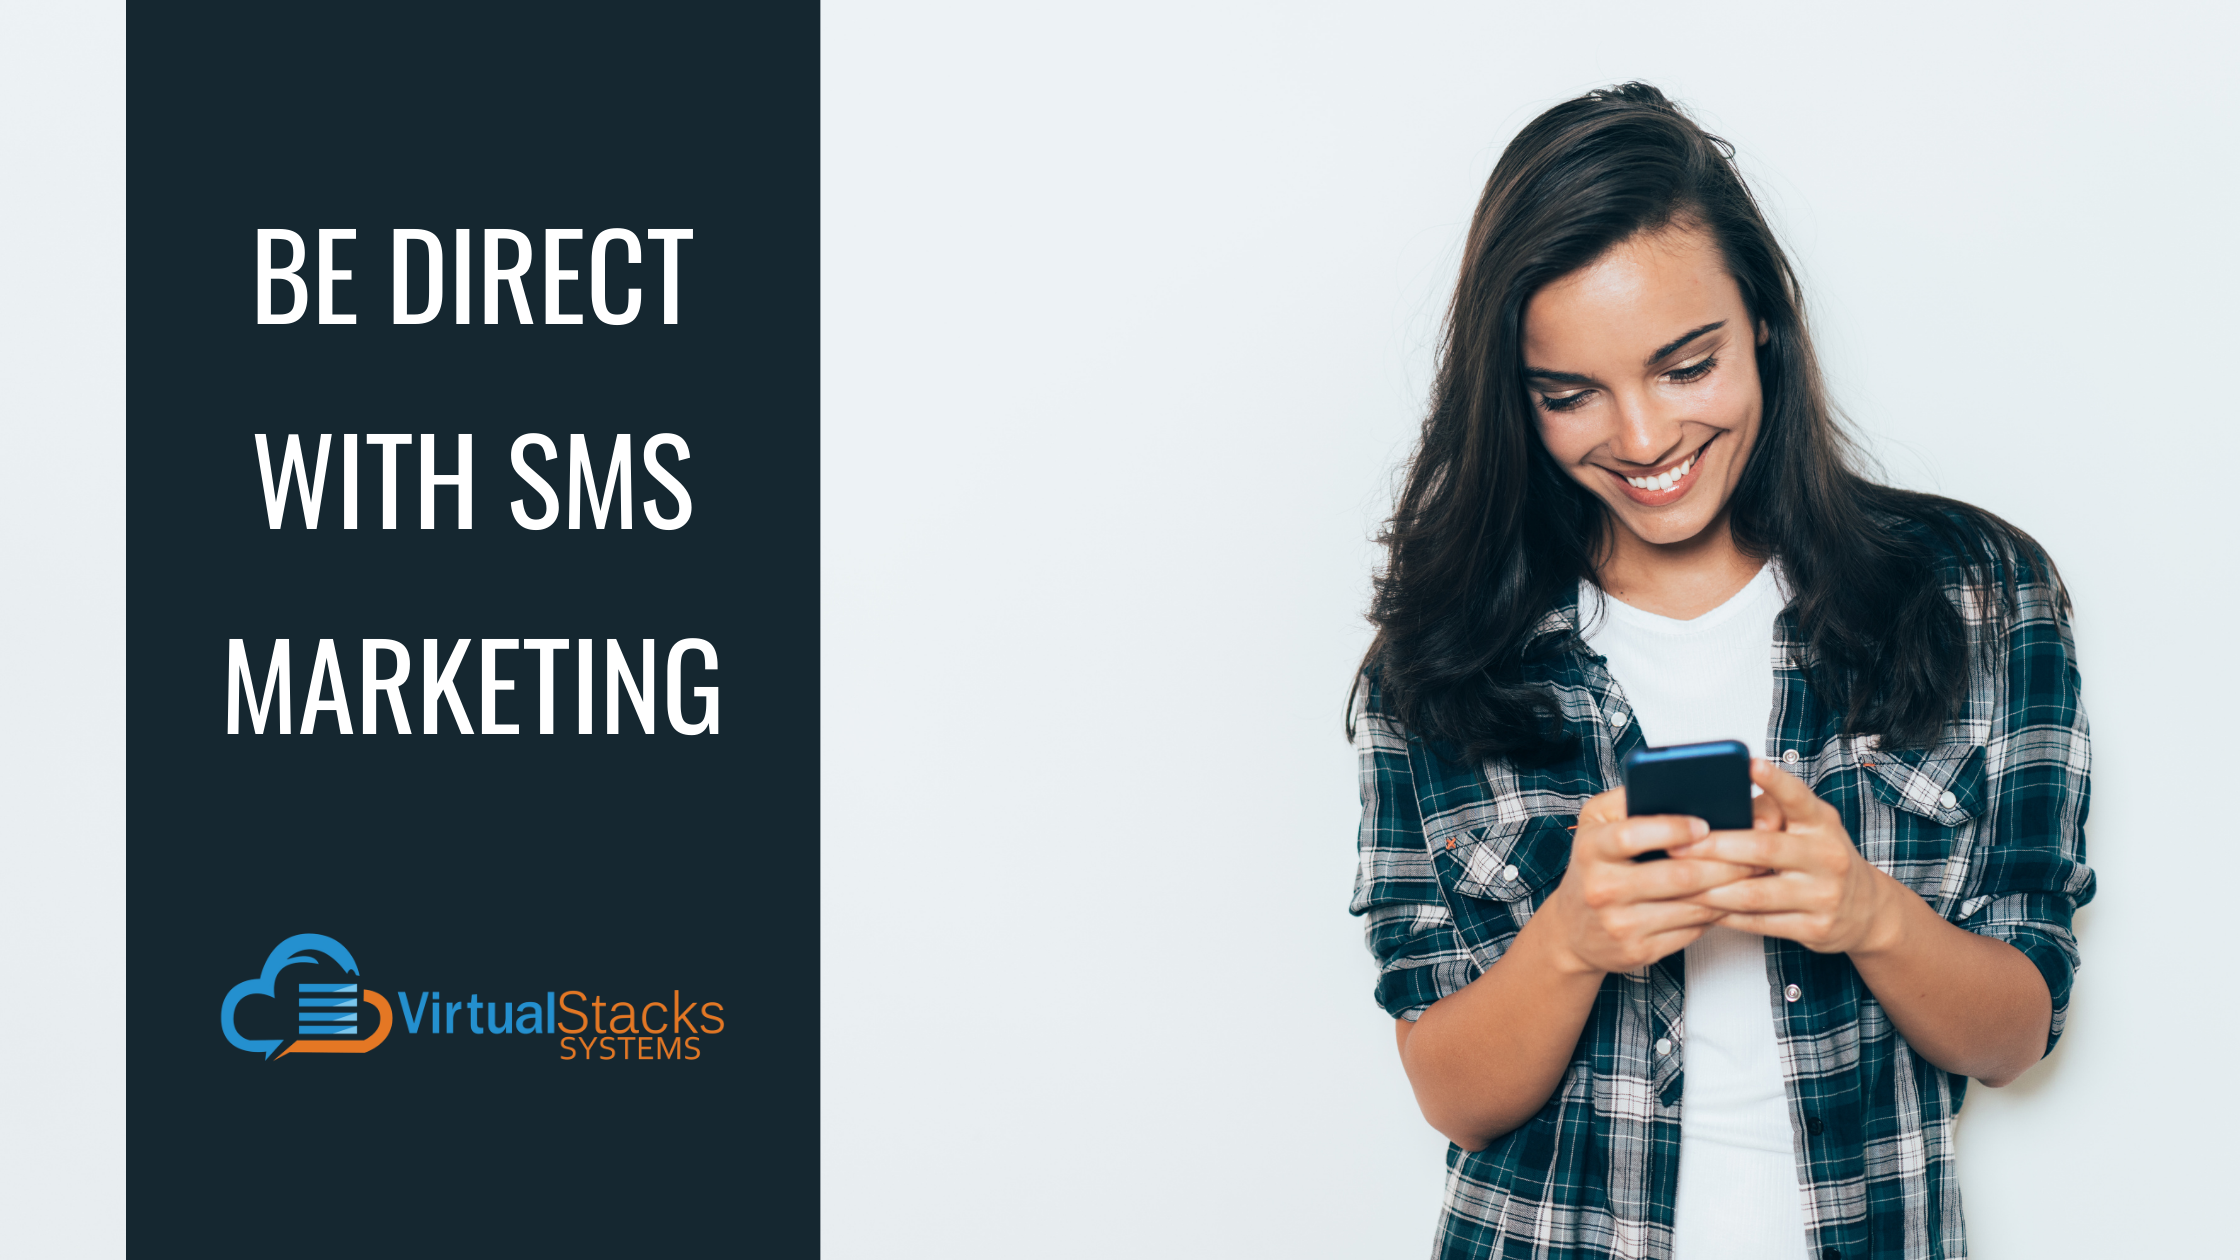 Be Direct with SMS Marketing